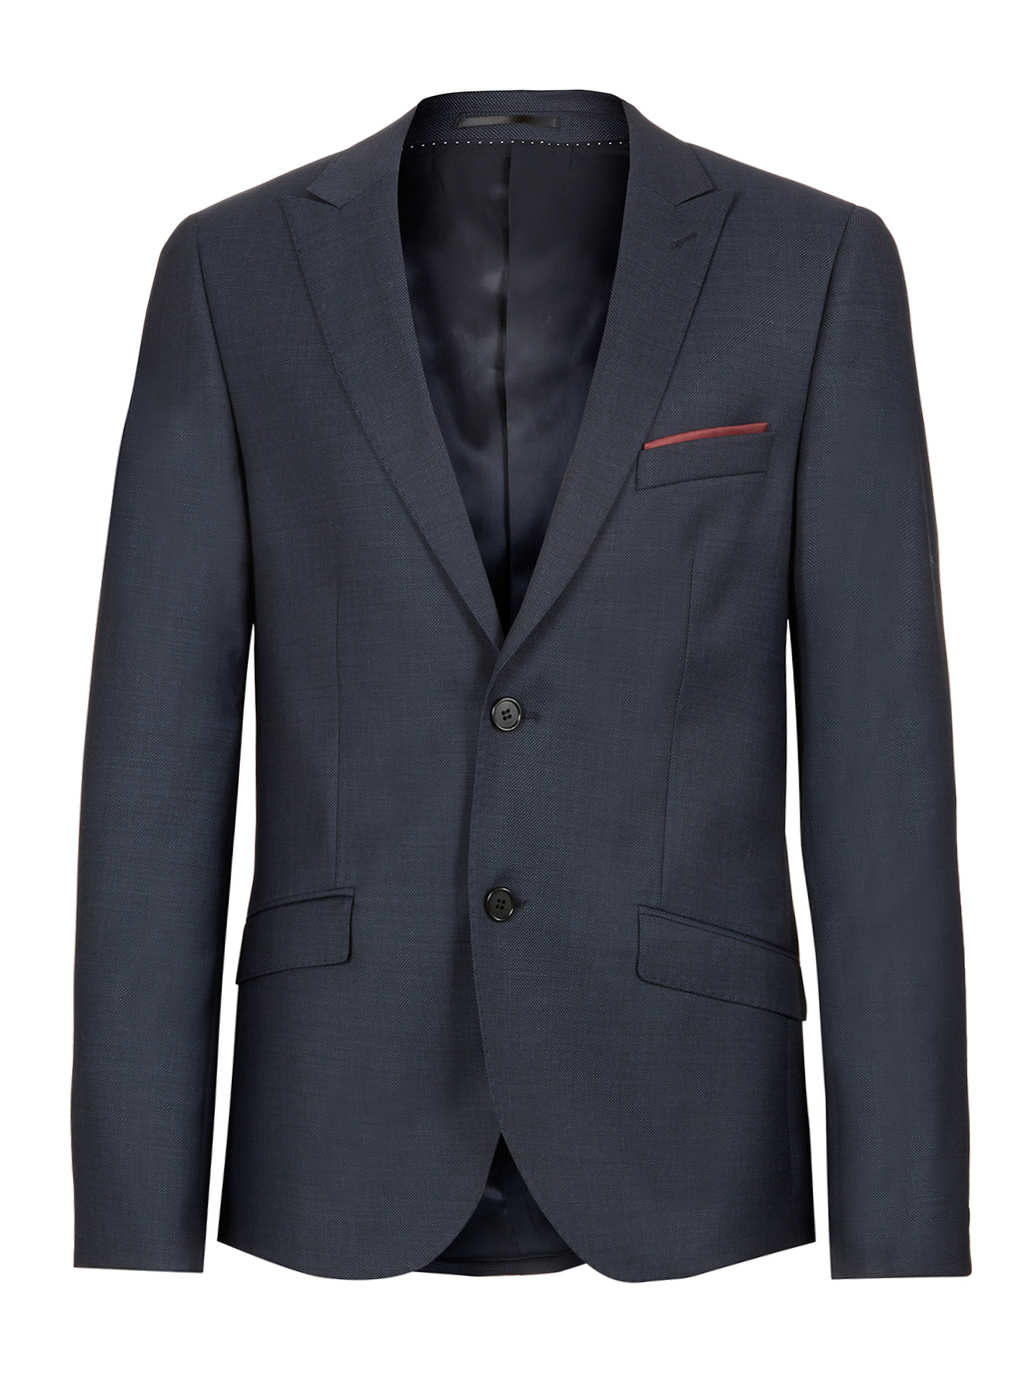 Shop hundreds of men's suits online at fbcpmhoe.cf Browse the latest business & designer brand suit collections & styles. FREE Shipping on orders $99+.